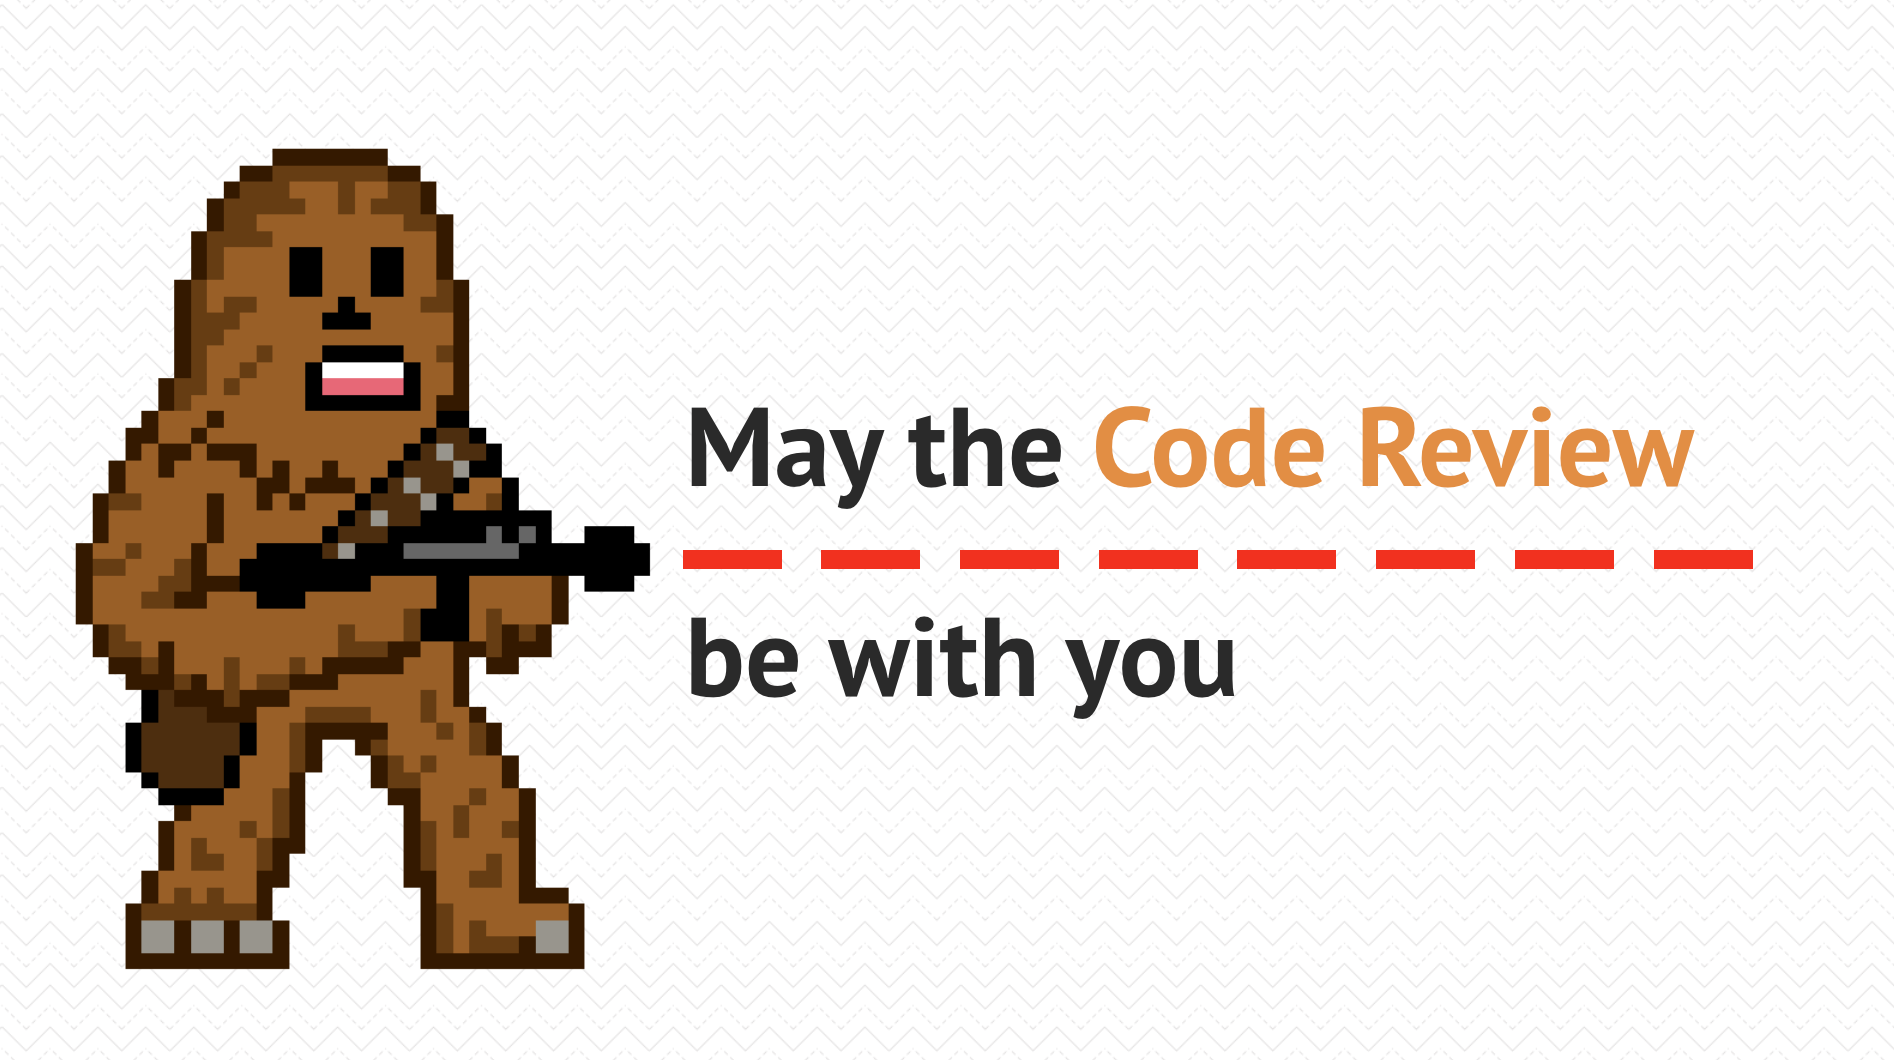 May the Code Review be with you - 1